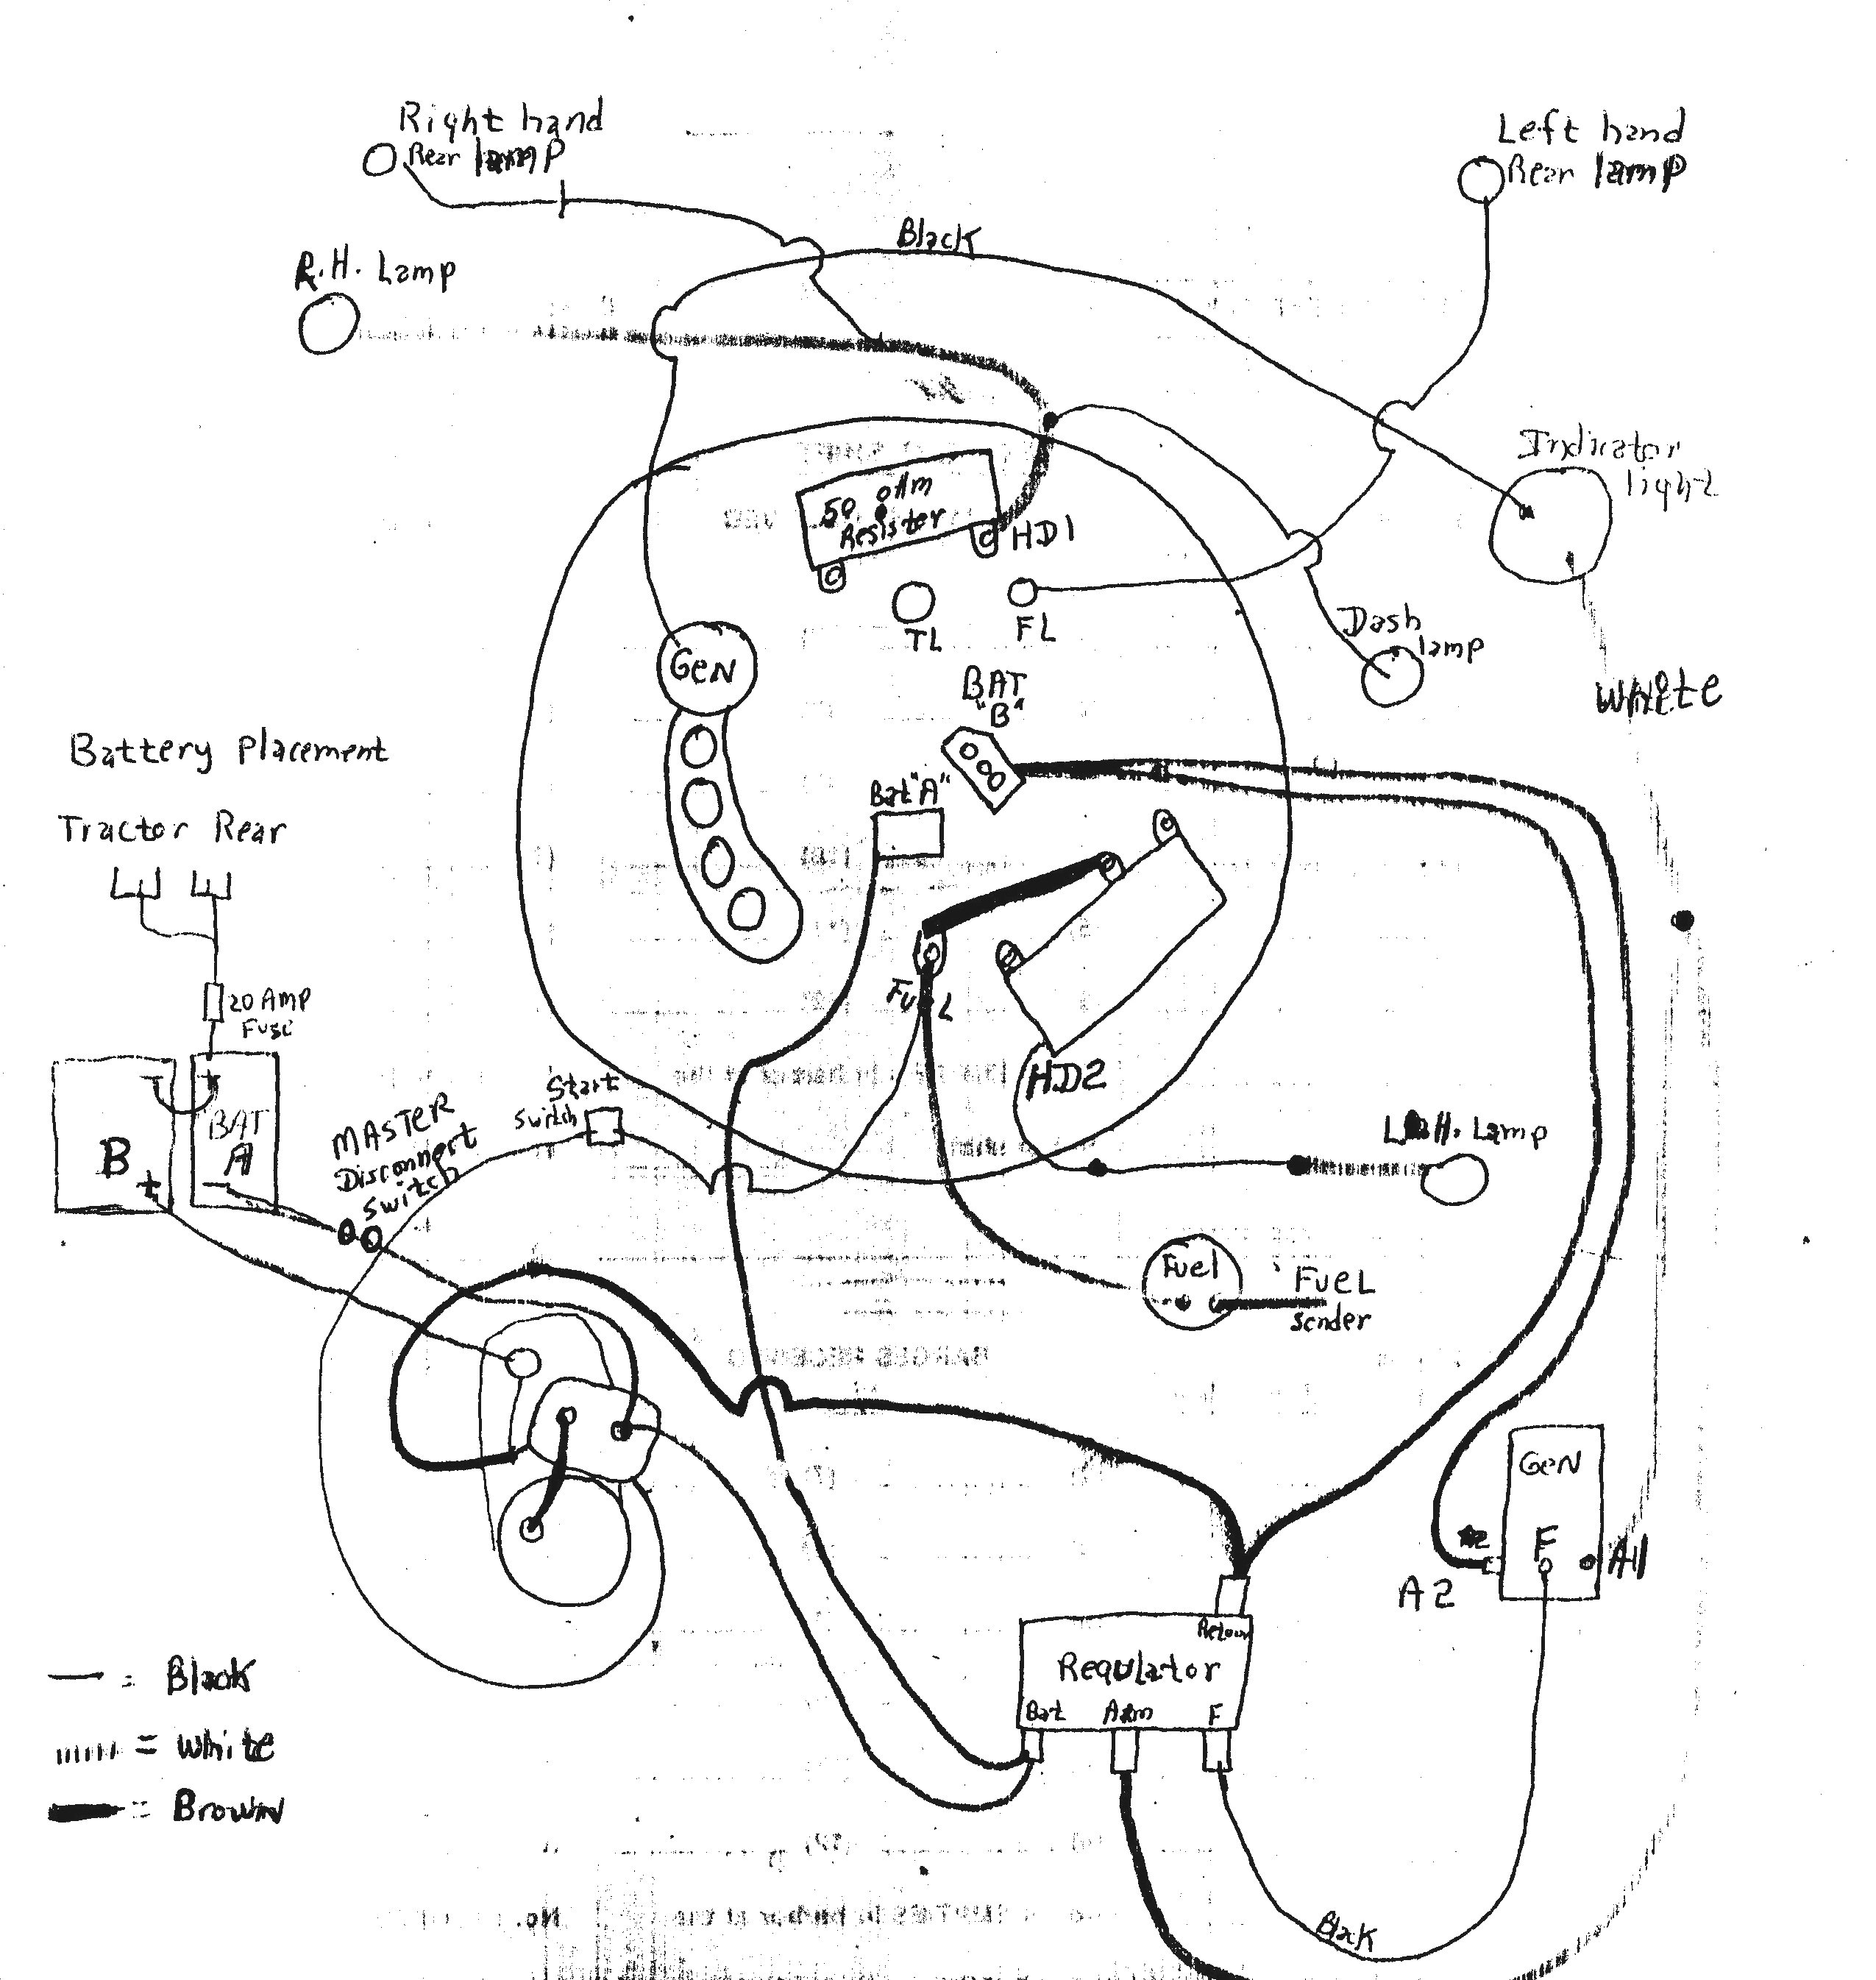 The John Deere 24 Volt Electrical System Explained John Deere 320 Parts  Diagram John Deere 24 Volt Wiring Diagram